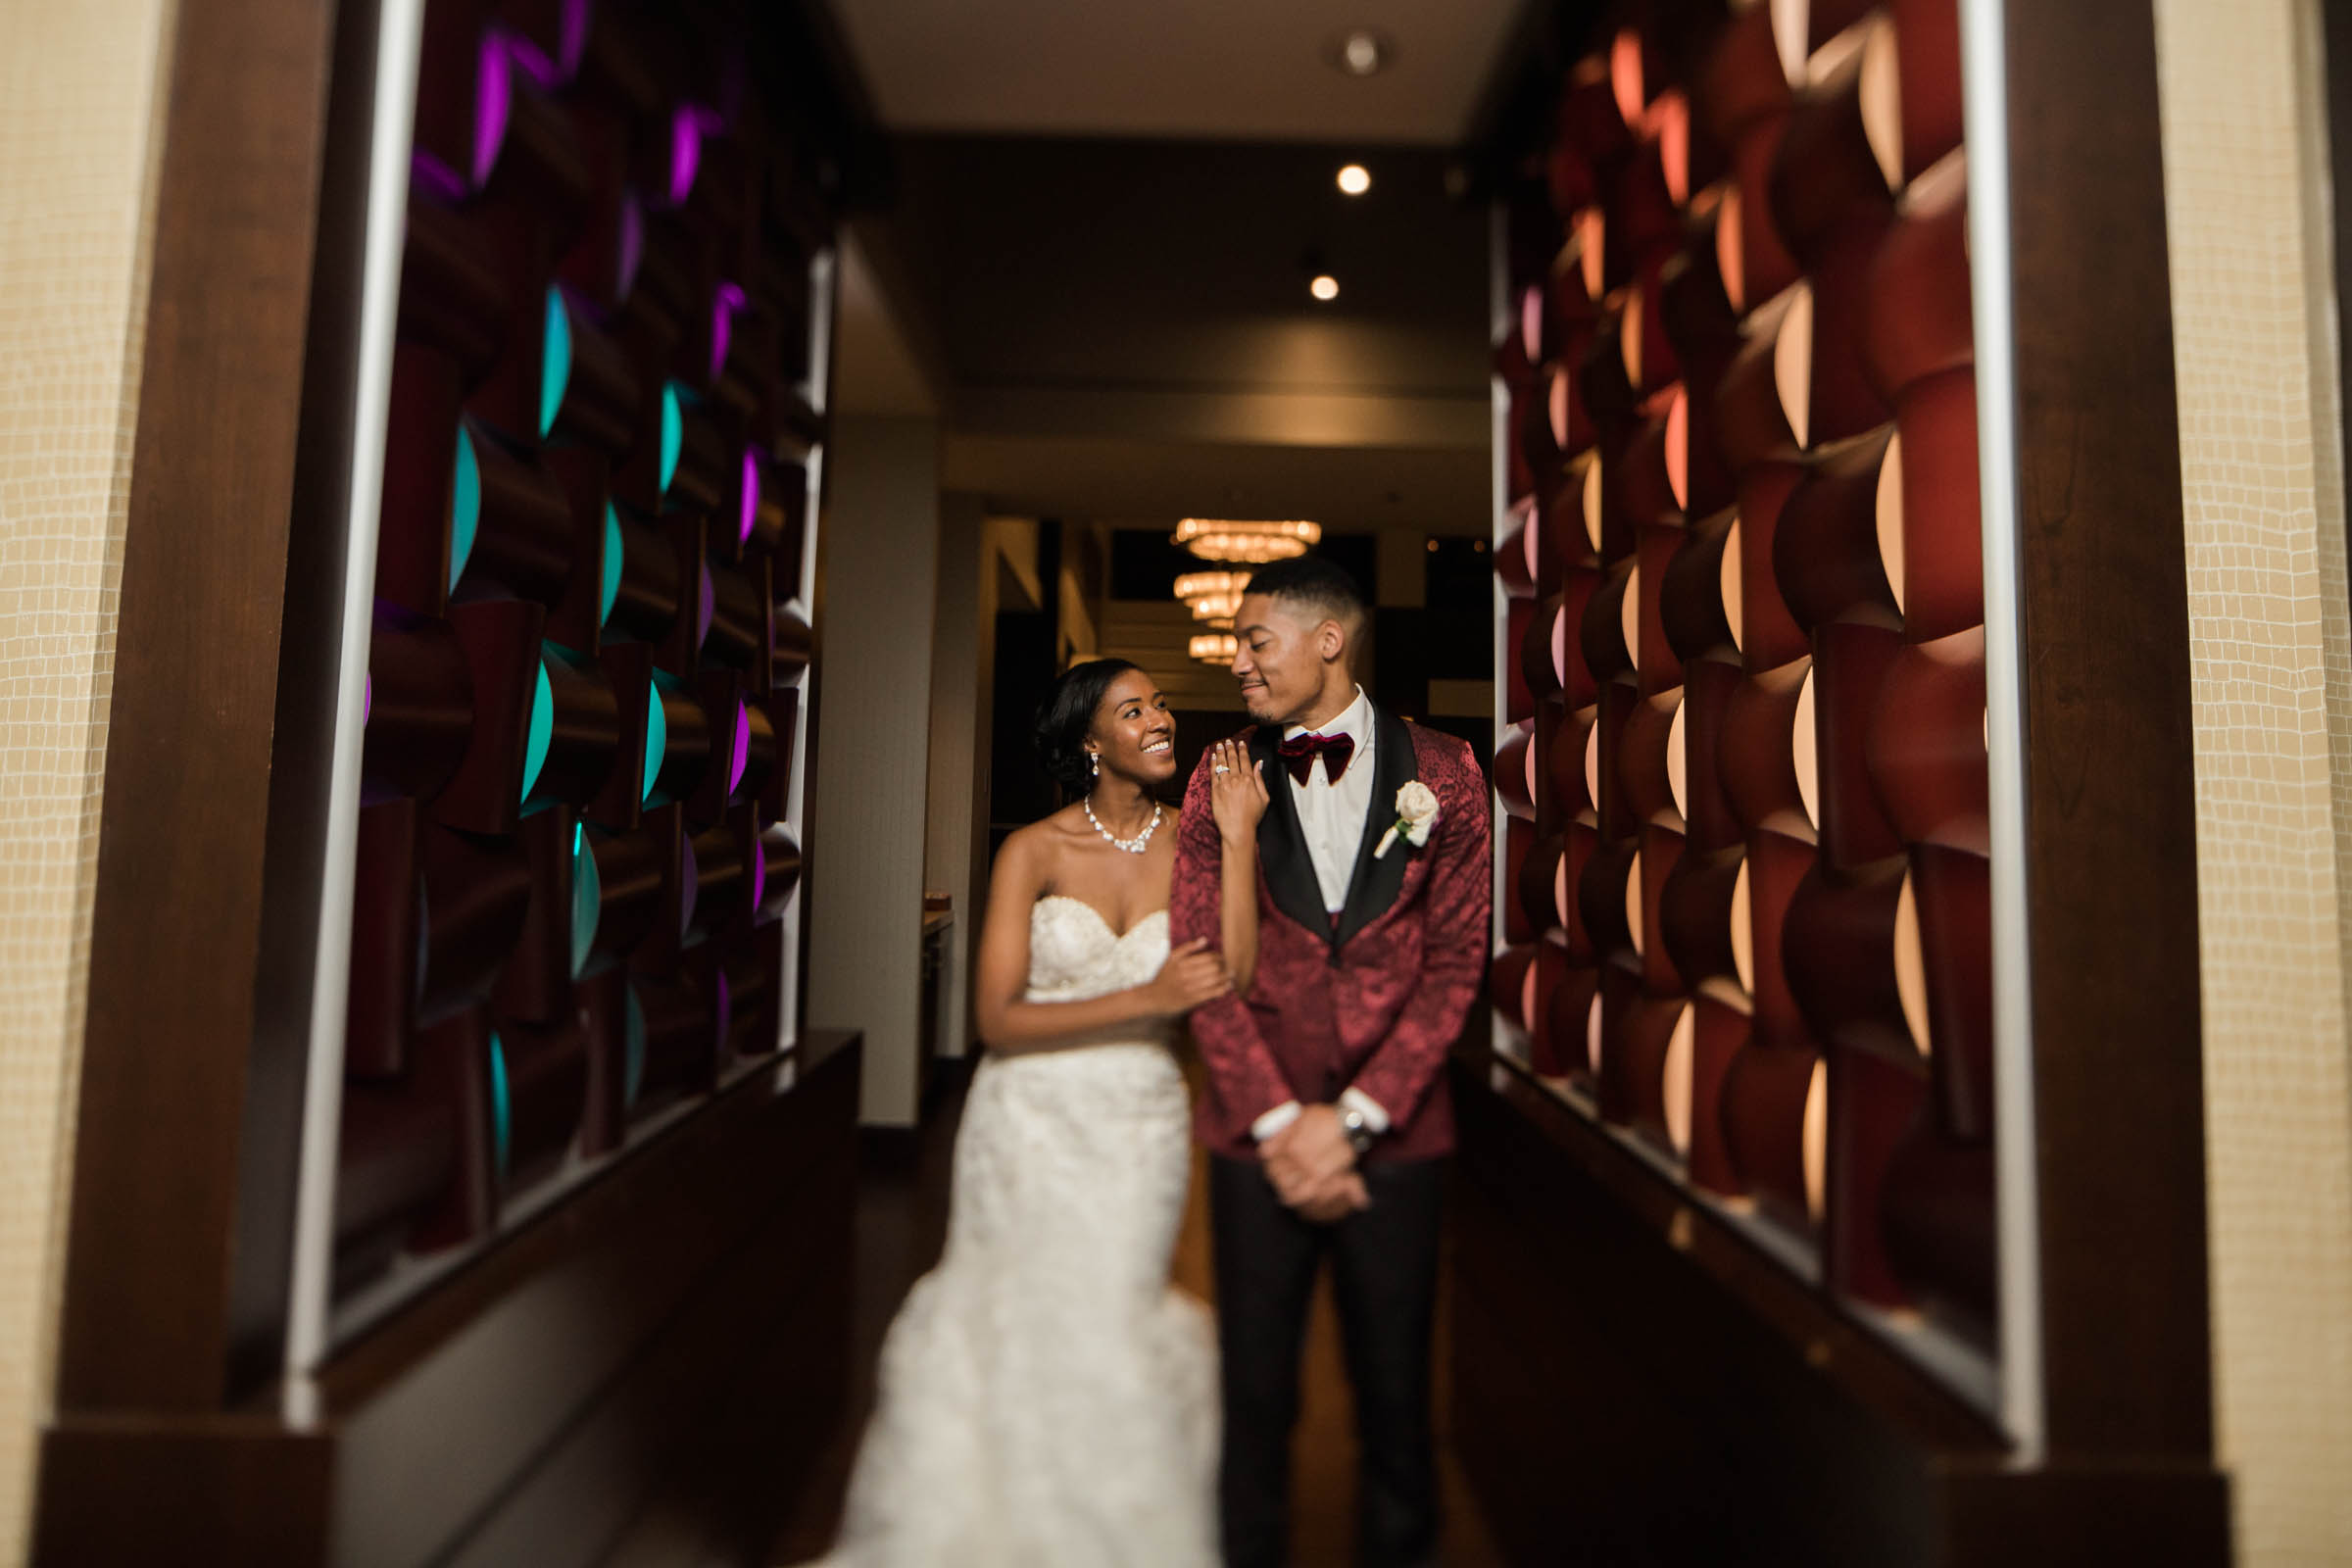 Black Bride Dream Wedding at  Hyatt Regency Fairfax Virginia Husband and Wife Wedding Photographers Megapixels Media Photography (102 of 104).jpg